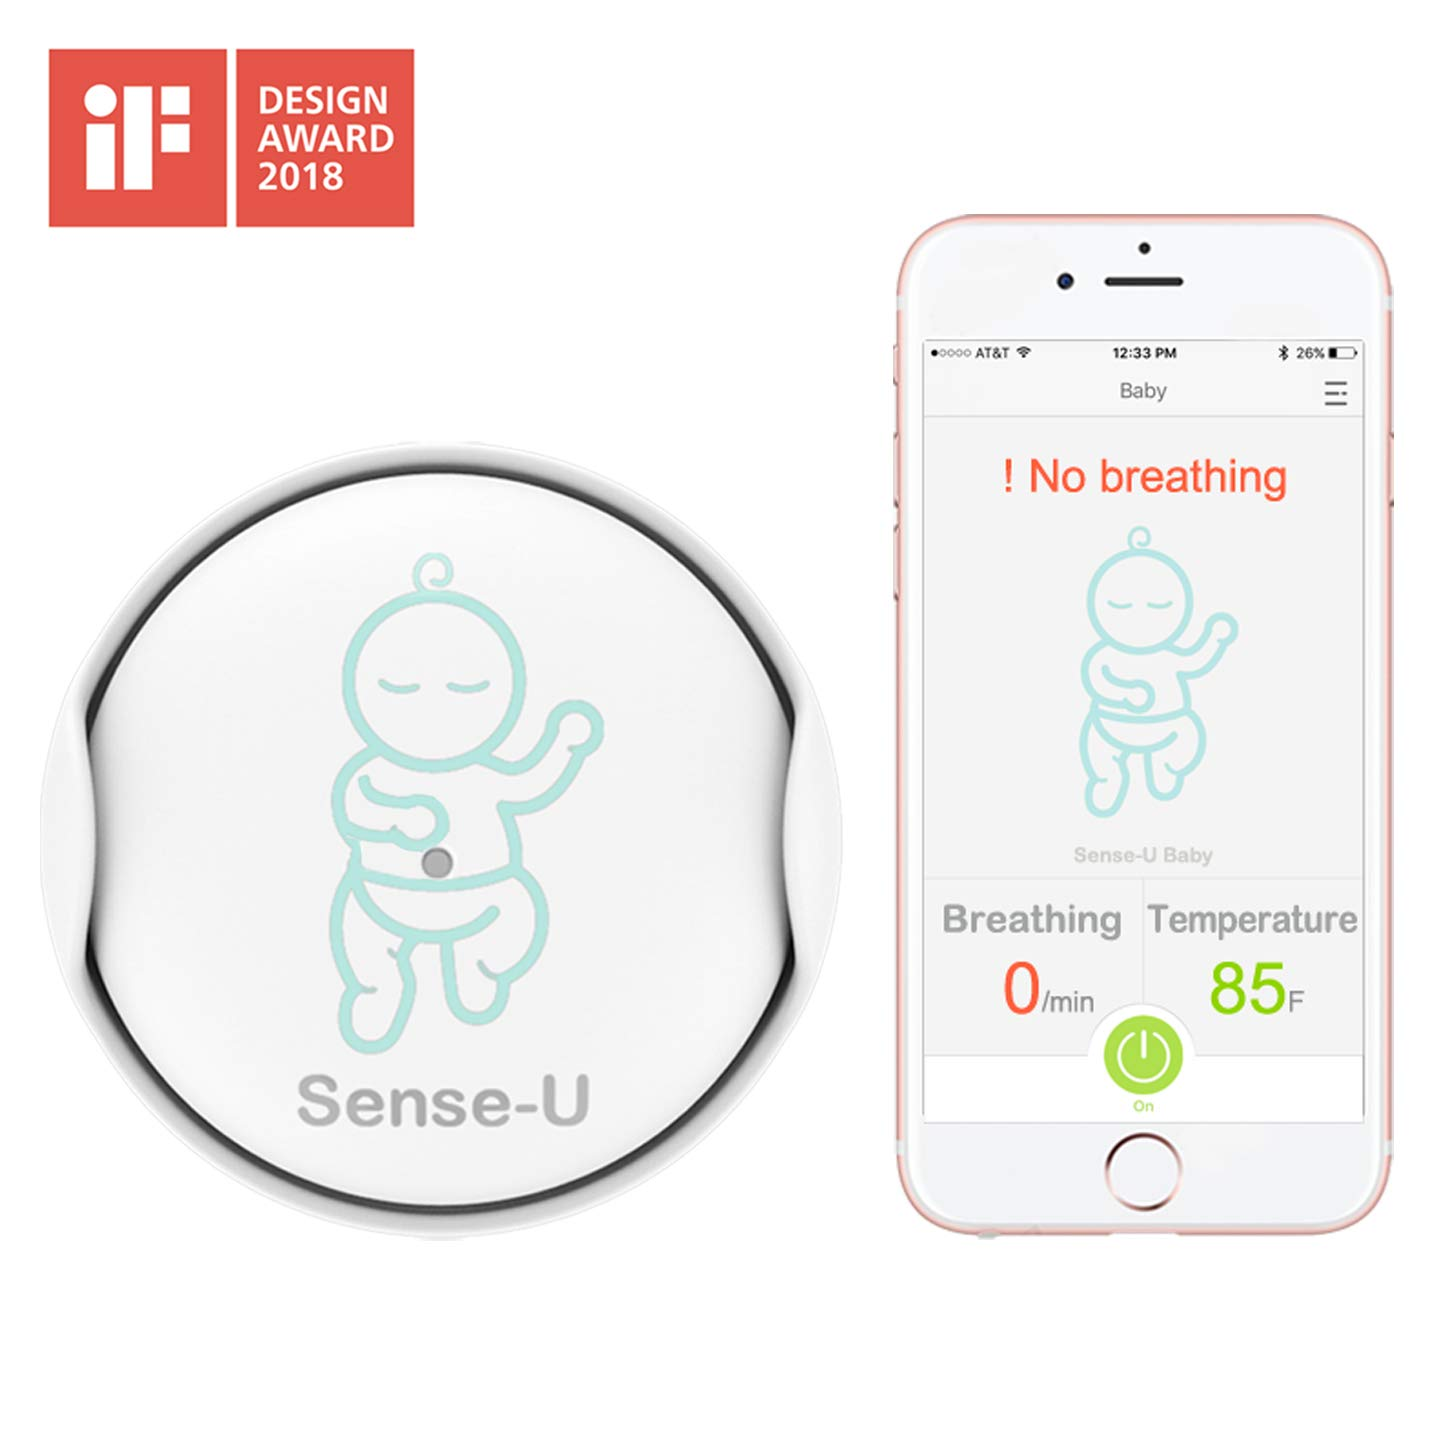 Top 6 Best Baby Breathing Monitors Reviews in 2019 2